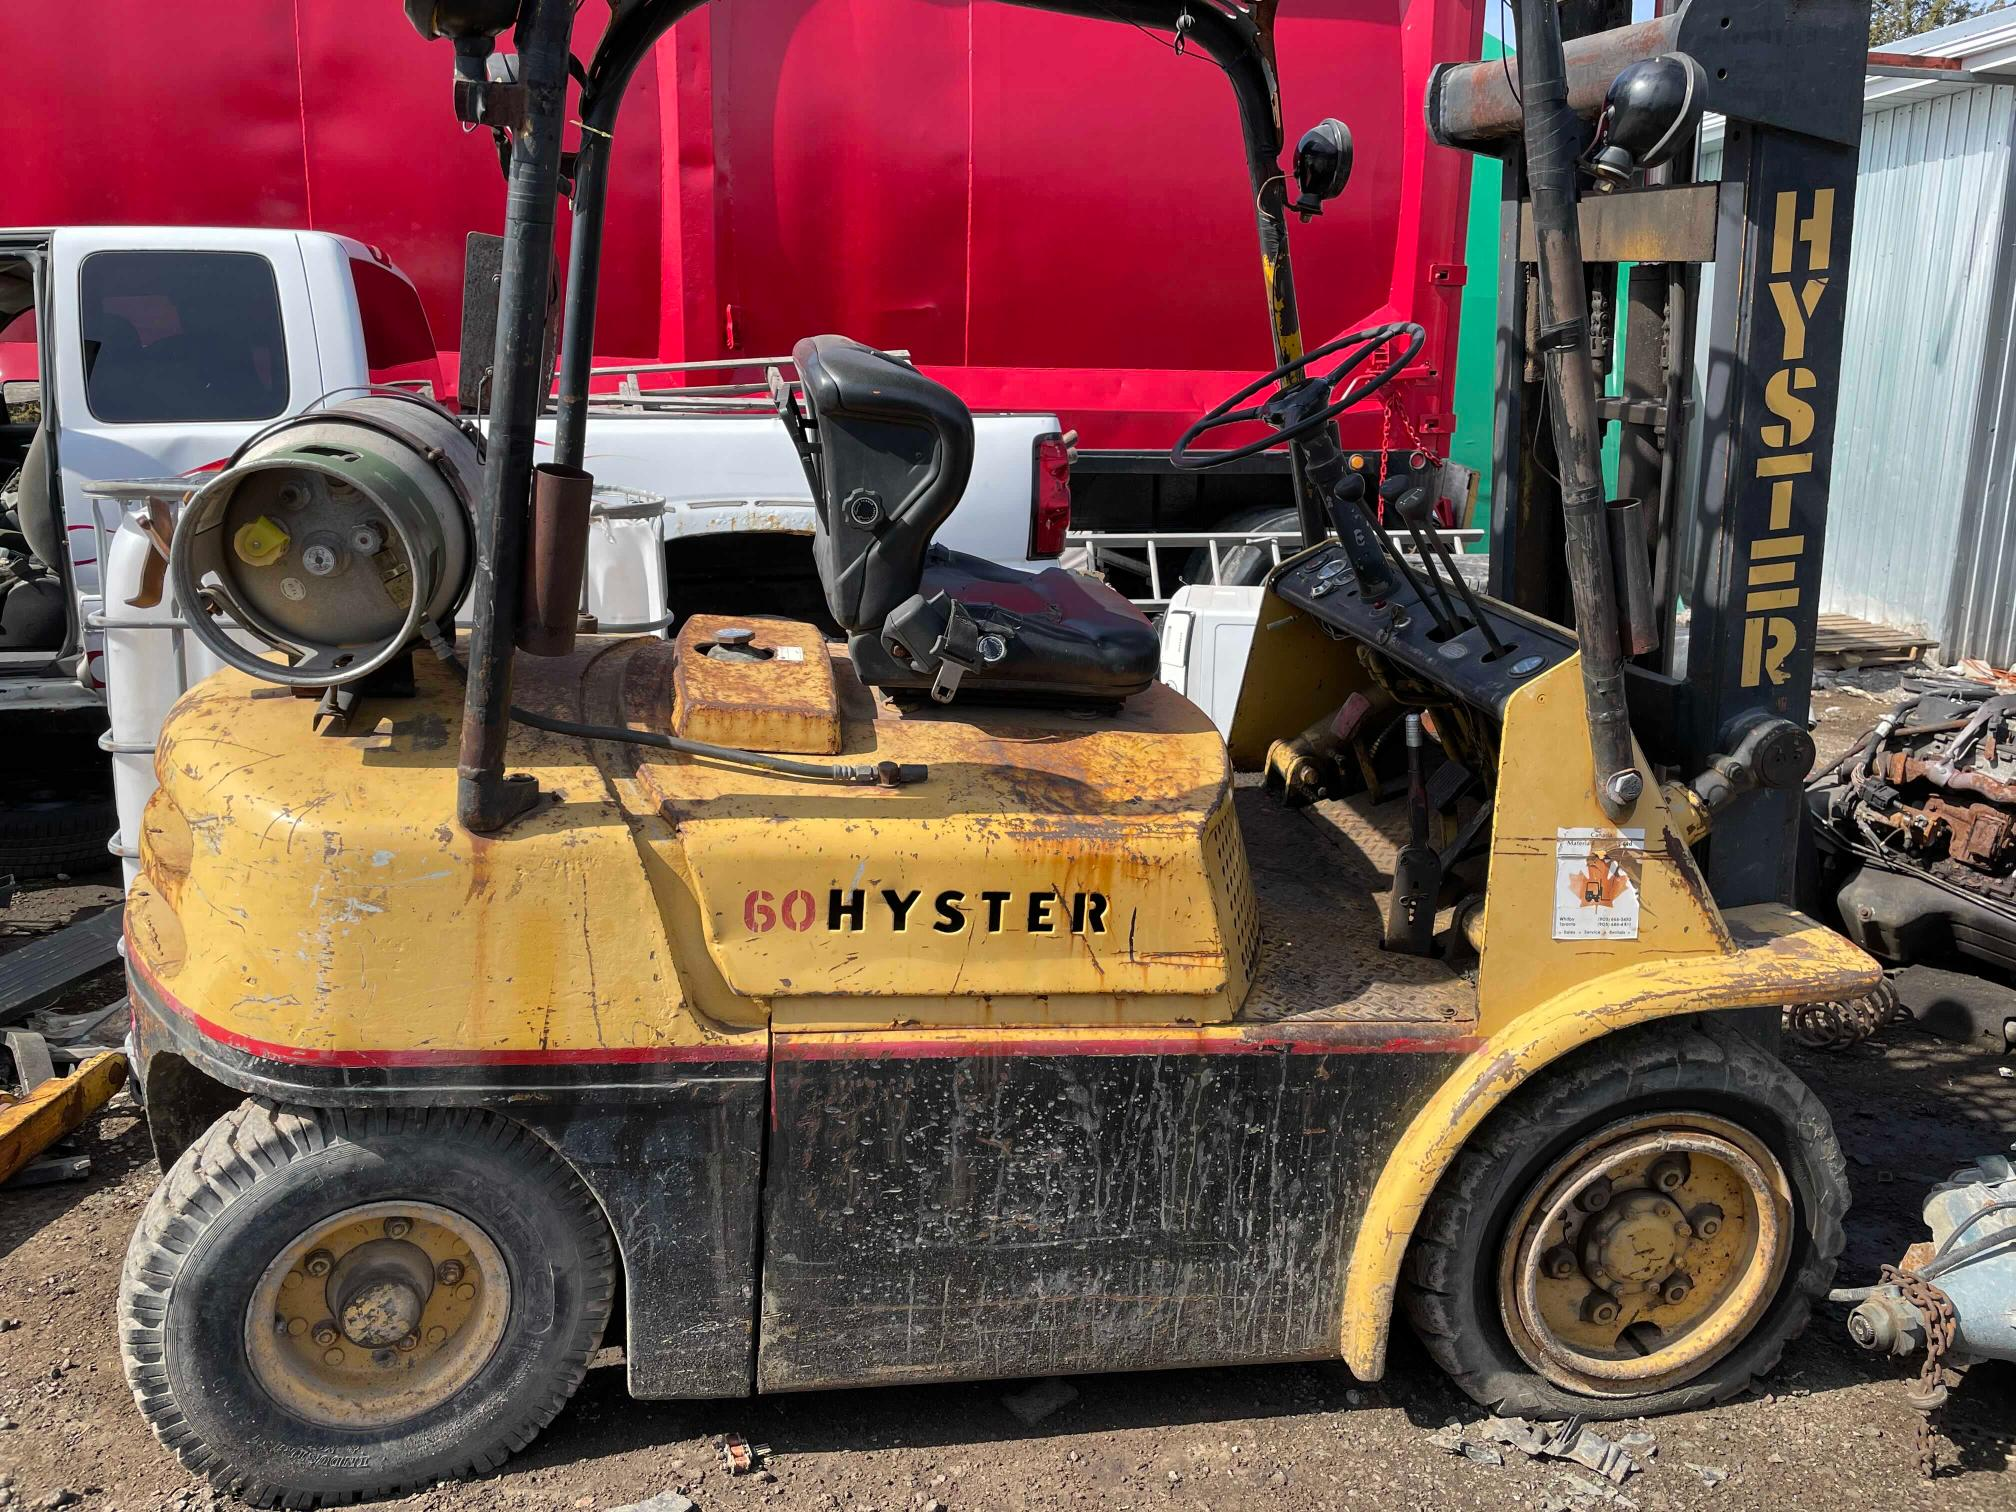 Global Auto Auctions: 1970 HYST FORKLIFT